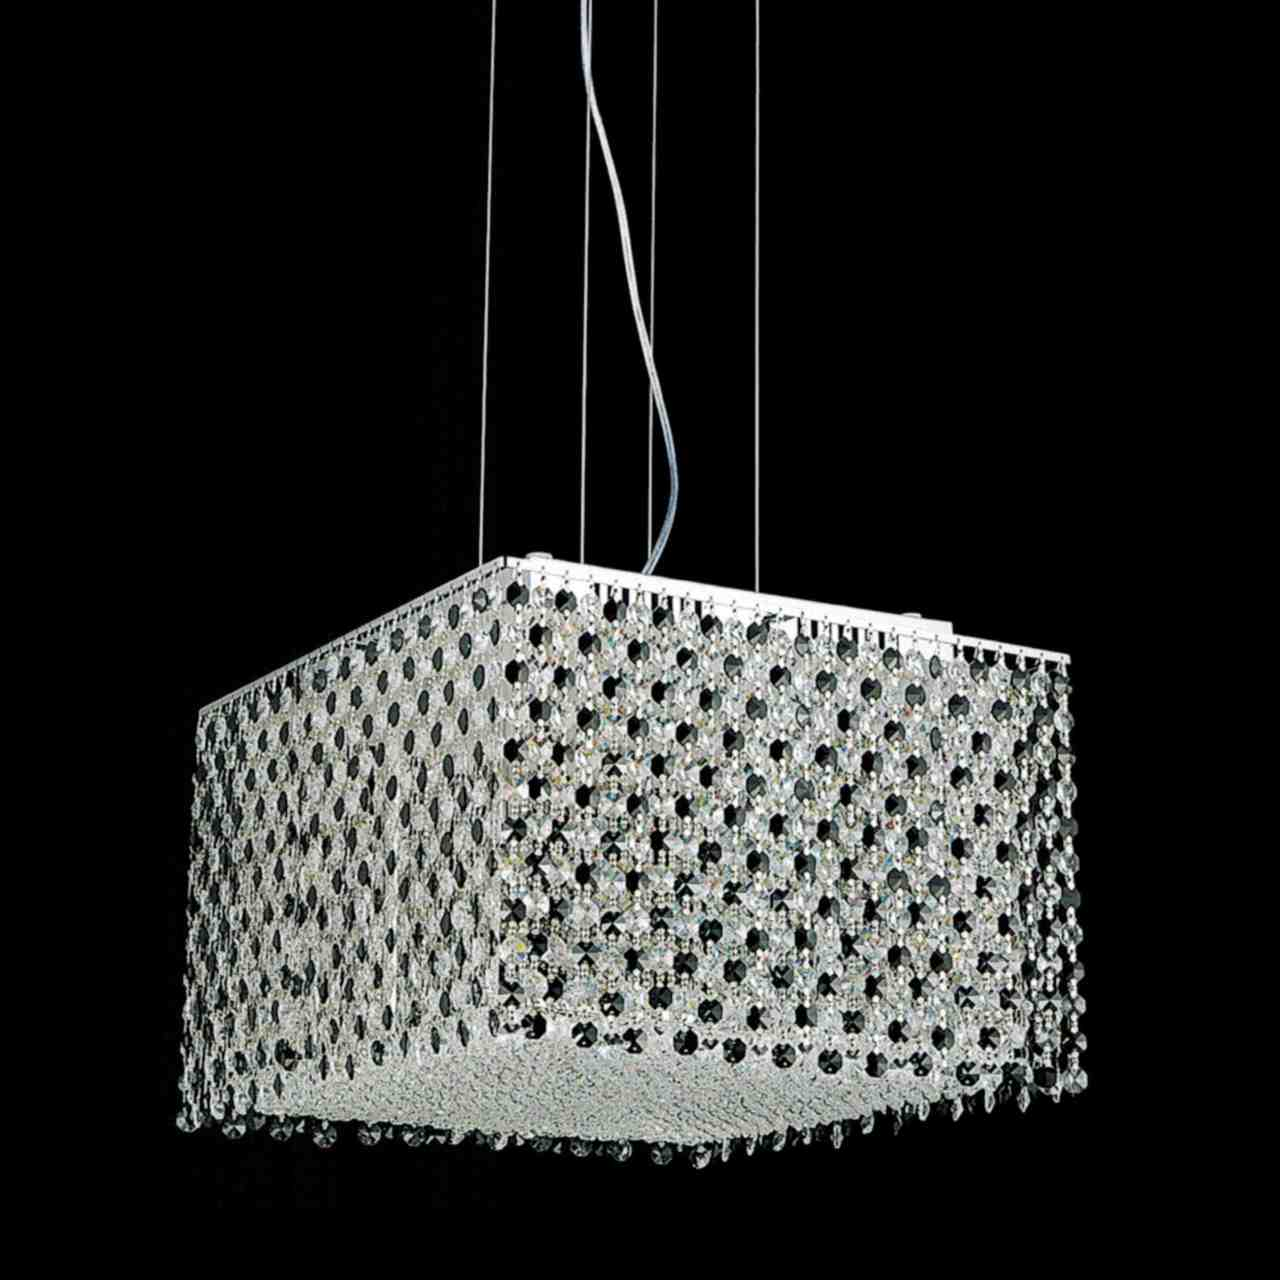 Brizzo lighting stores 16 rainbow modern square crystal chandelier picture of 16 rainbow modern square crystal chandelier polished chrome 12 lights aloadofball Choice Image